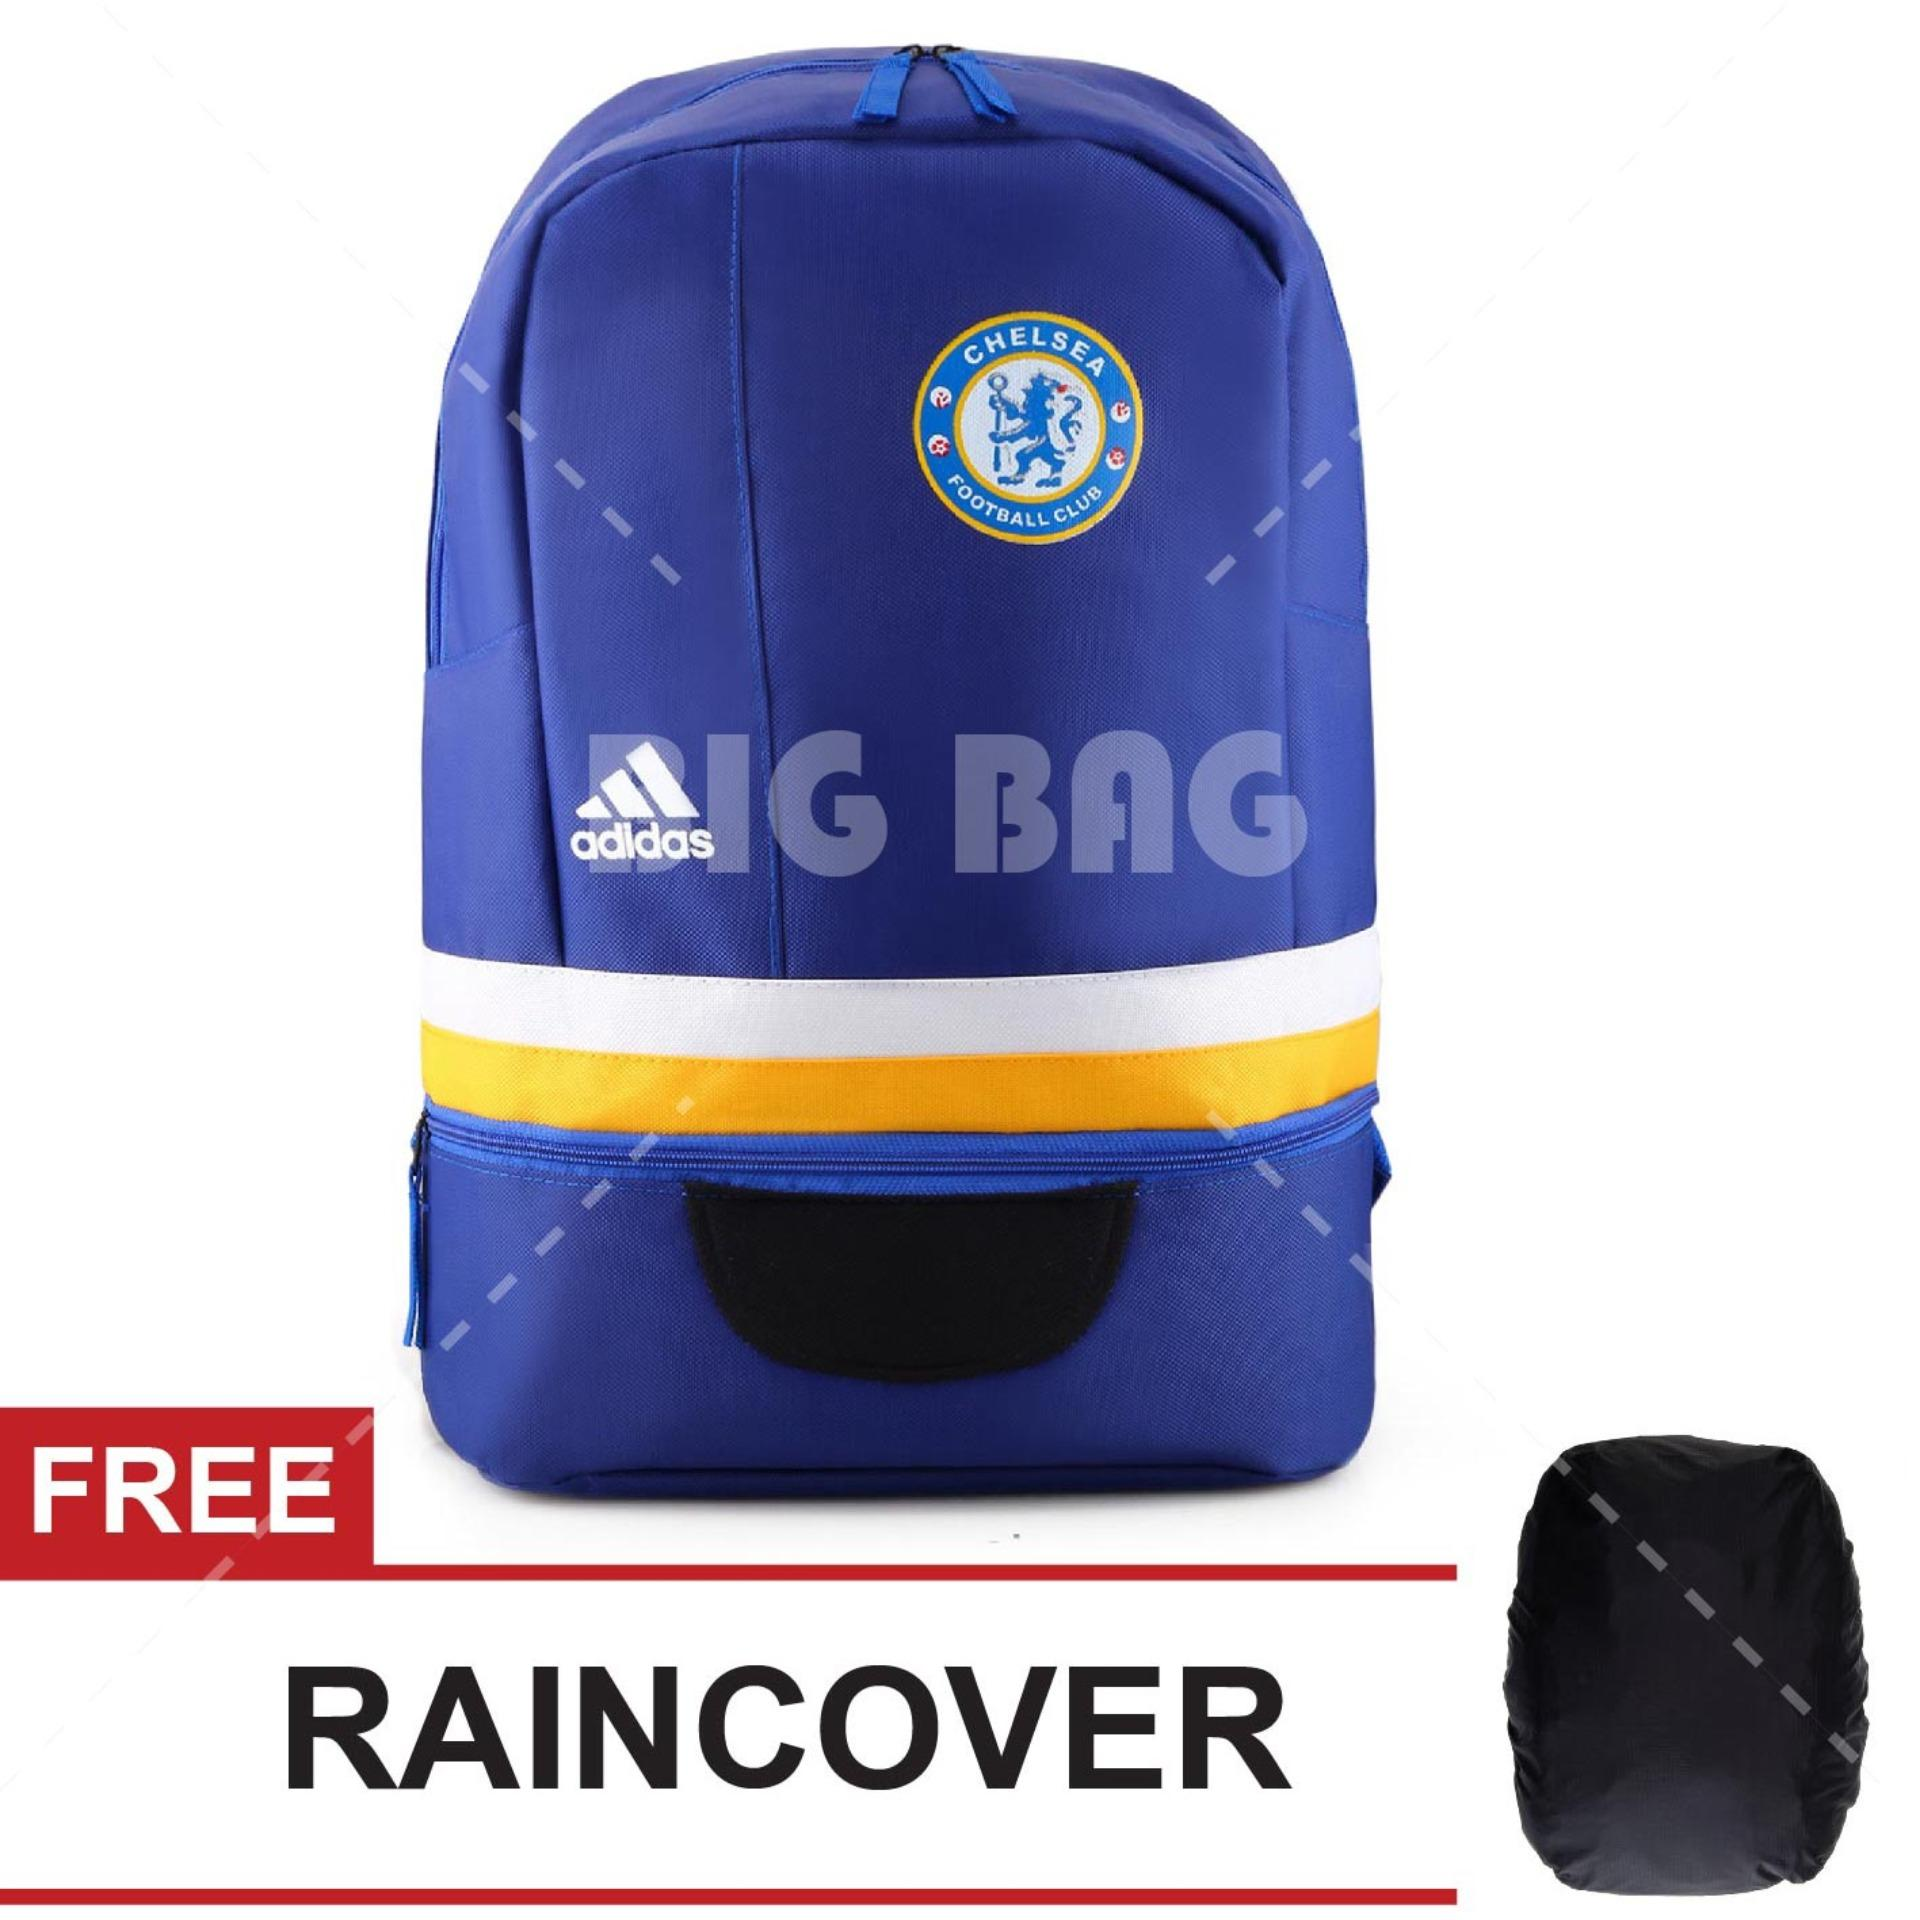 Tas Ransel Adidas Bola Pria Chelsea FC Laptop Backpack Men Soccer Editions - Blue + FREE Raincover